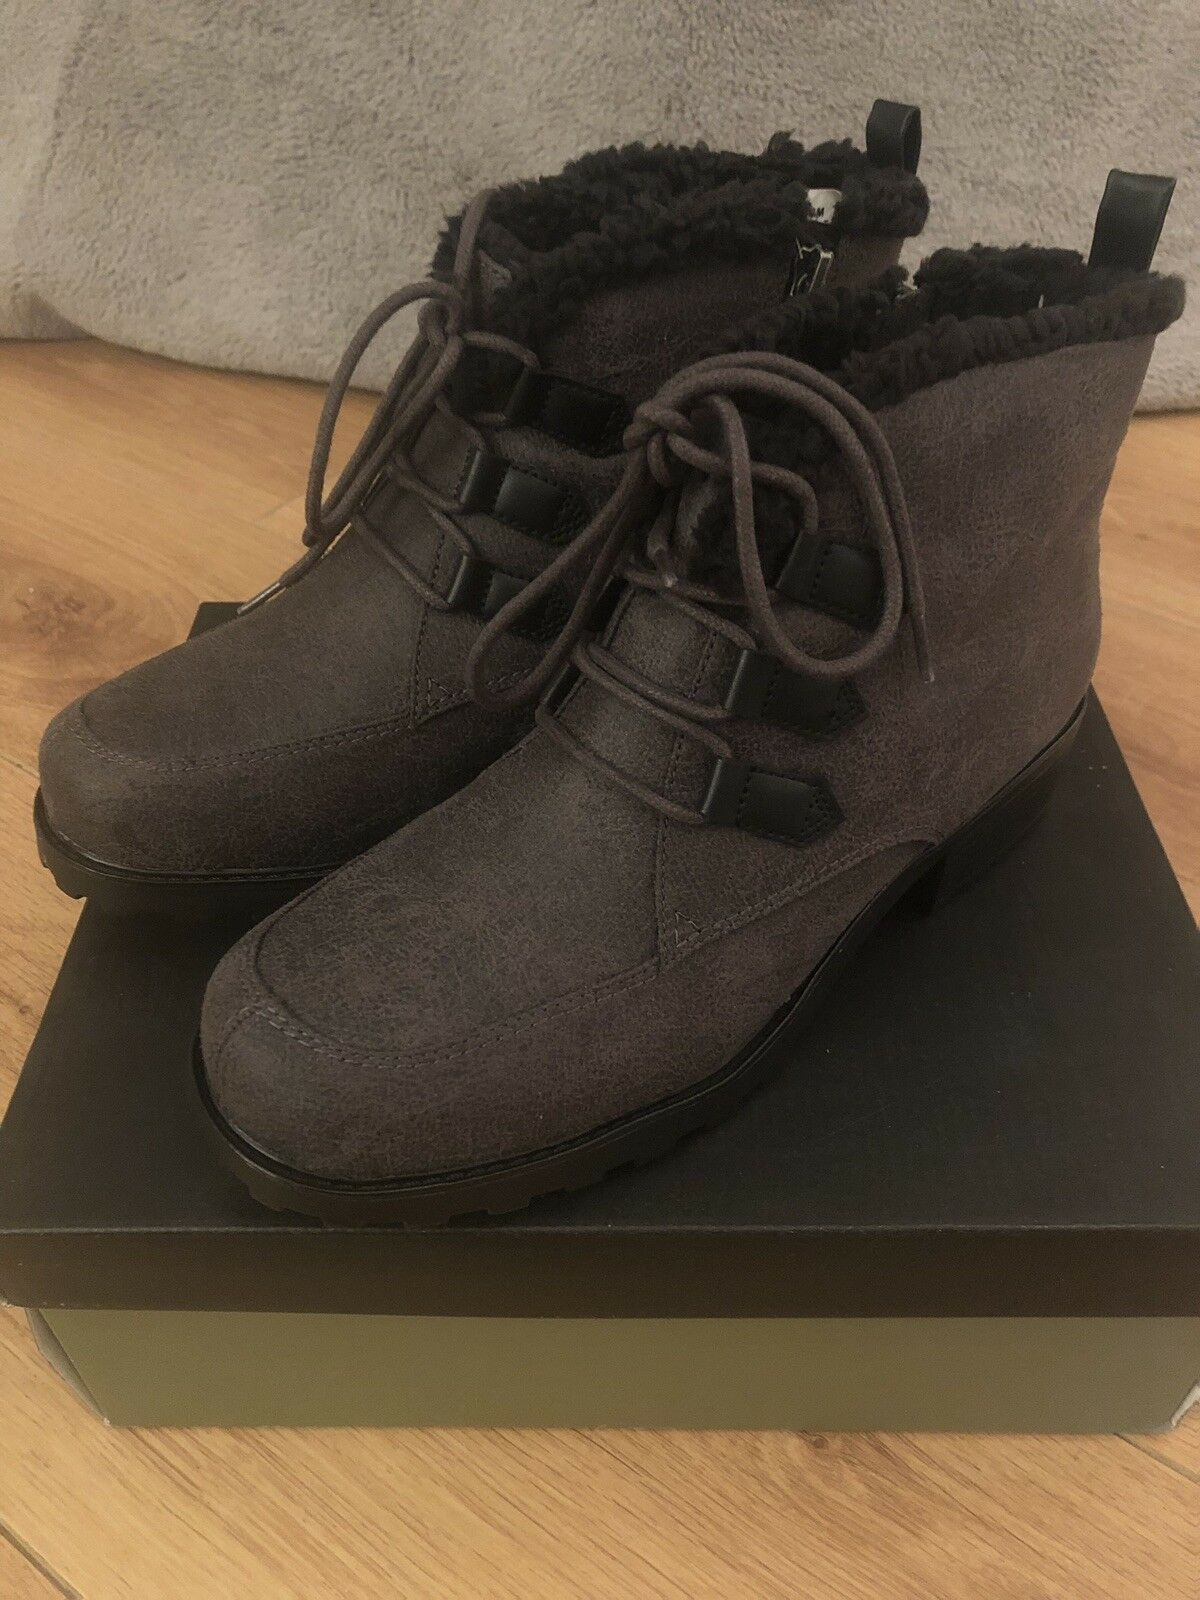 BRAND NEW TredTERS SNOWFLAKES III ladies fleece lined ankle ankle ankle boot - Grey UK 5.5 M 83bfc0